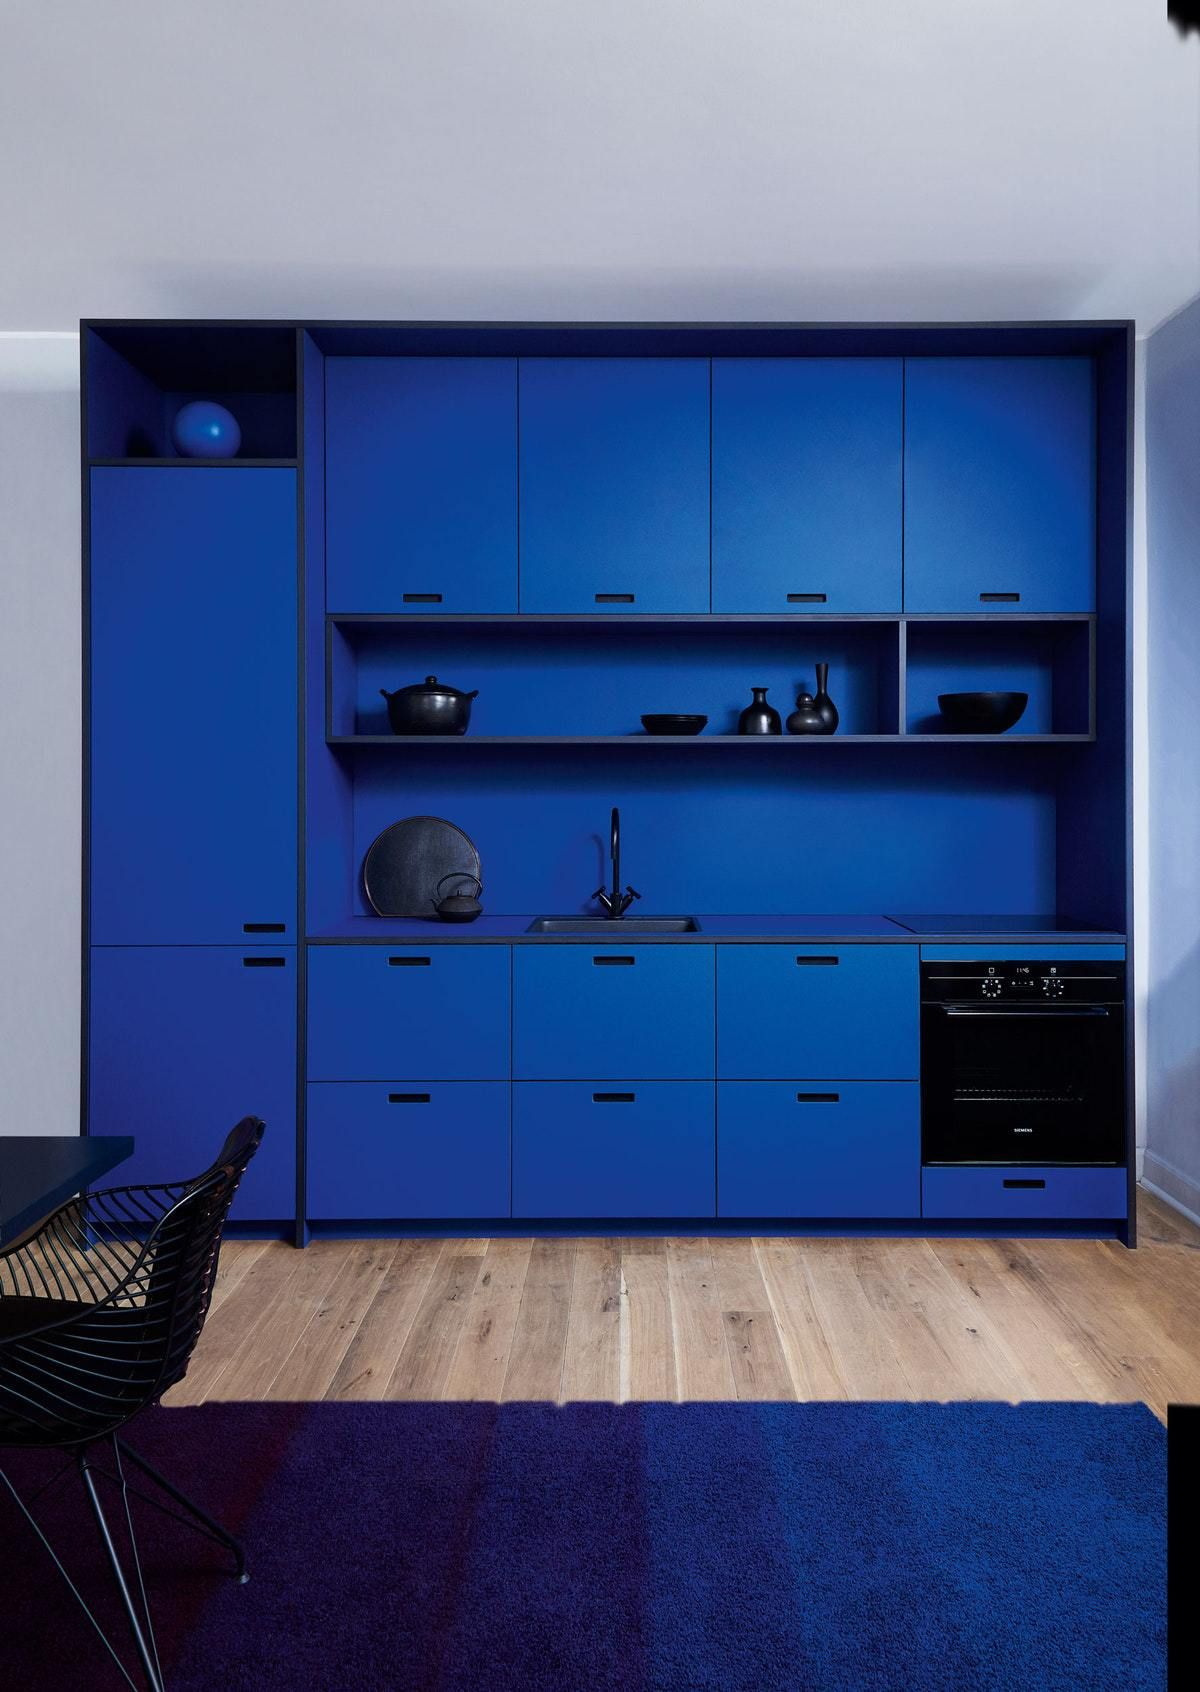 Choosing The Best Finish For Kitchen Cabinets Blue Kitchen Designs Kitchen Design Kitchen Interior